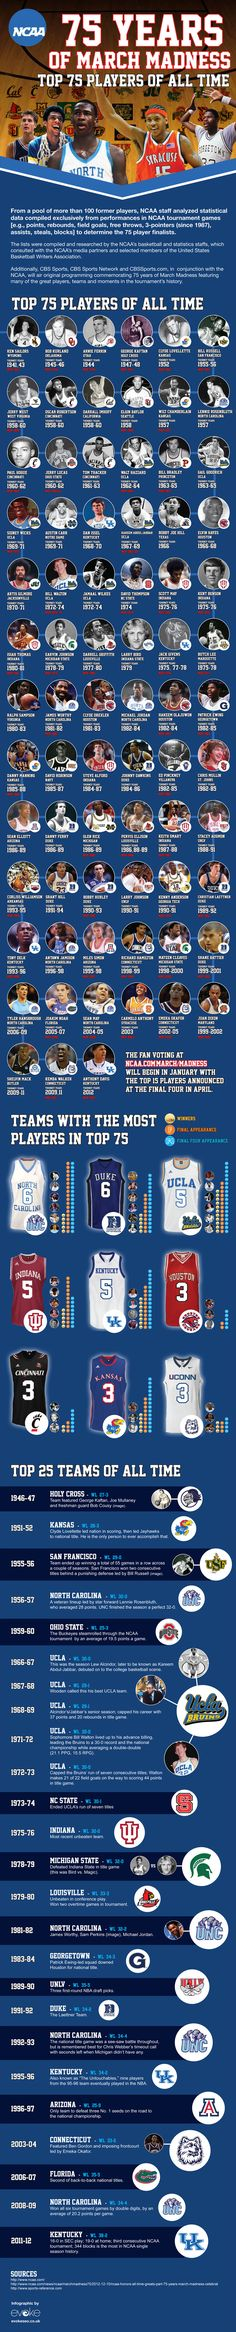 The Top 75 NCAA Basketball Players of All Time Infographic